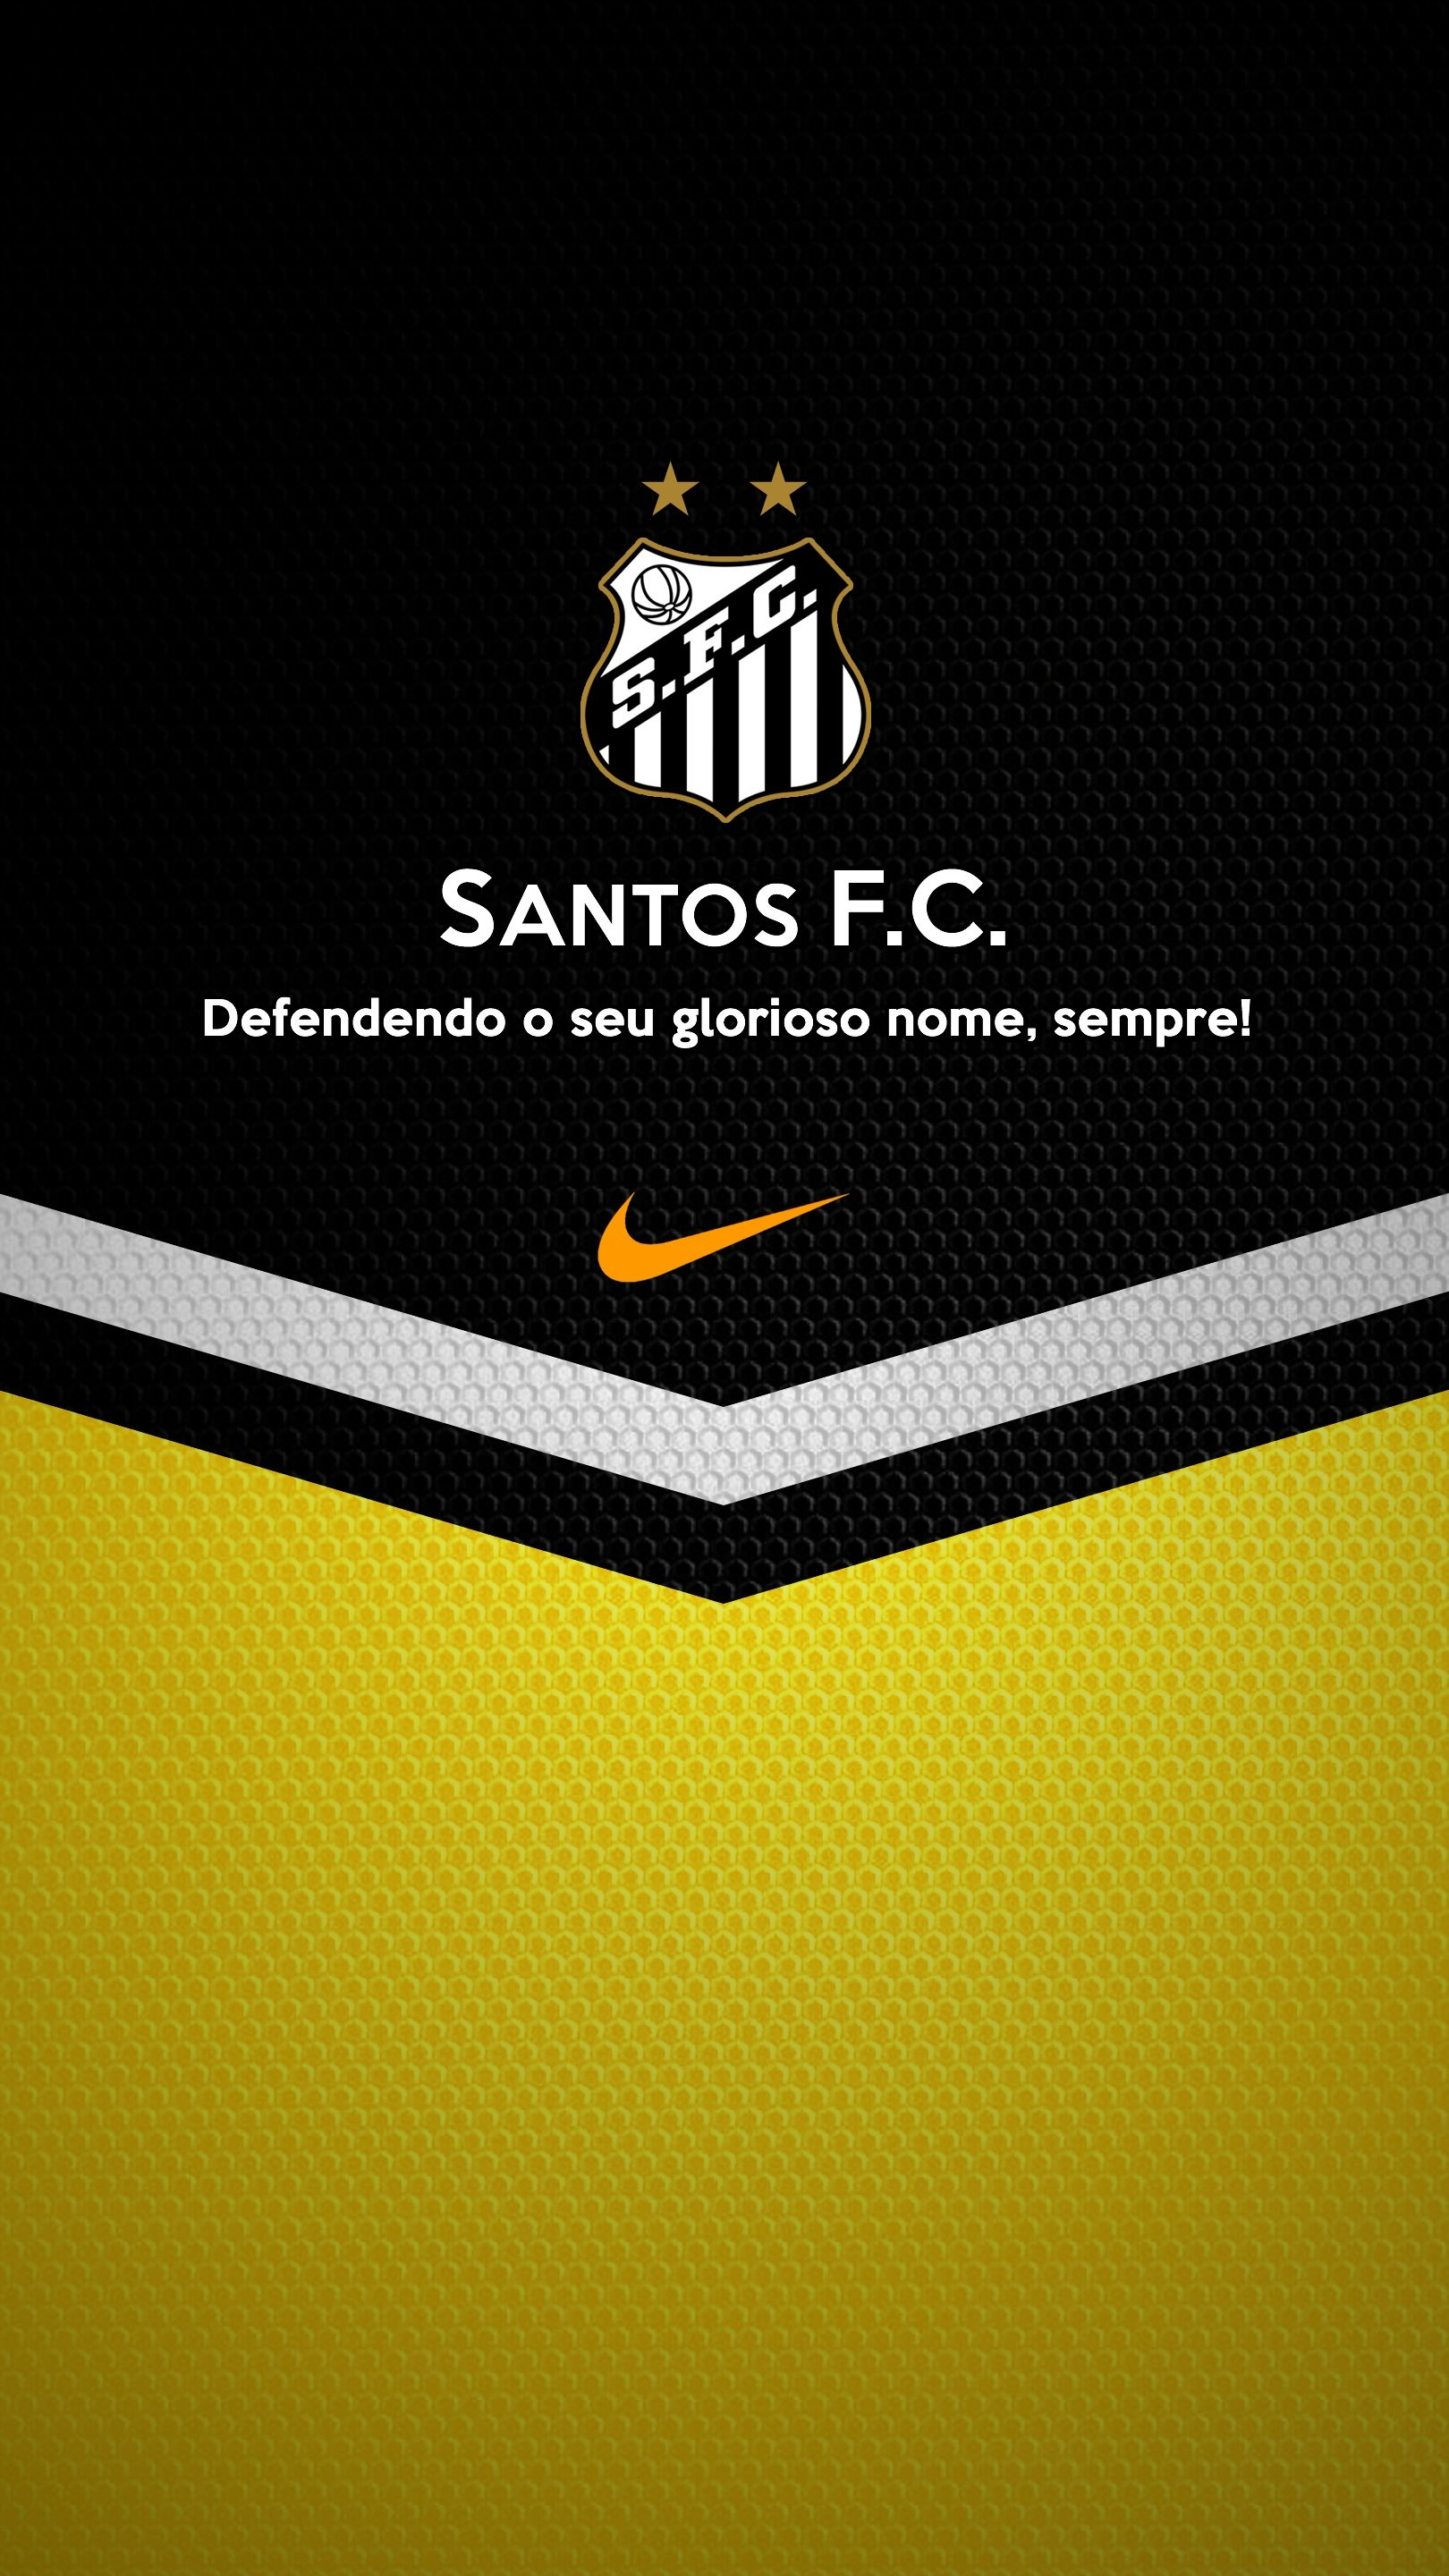 Best Looking Cars Wallpapers Santos Fc Wallpapers 63 Images